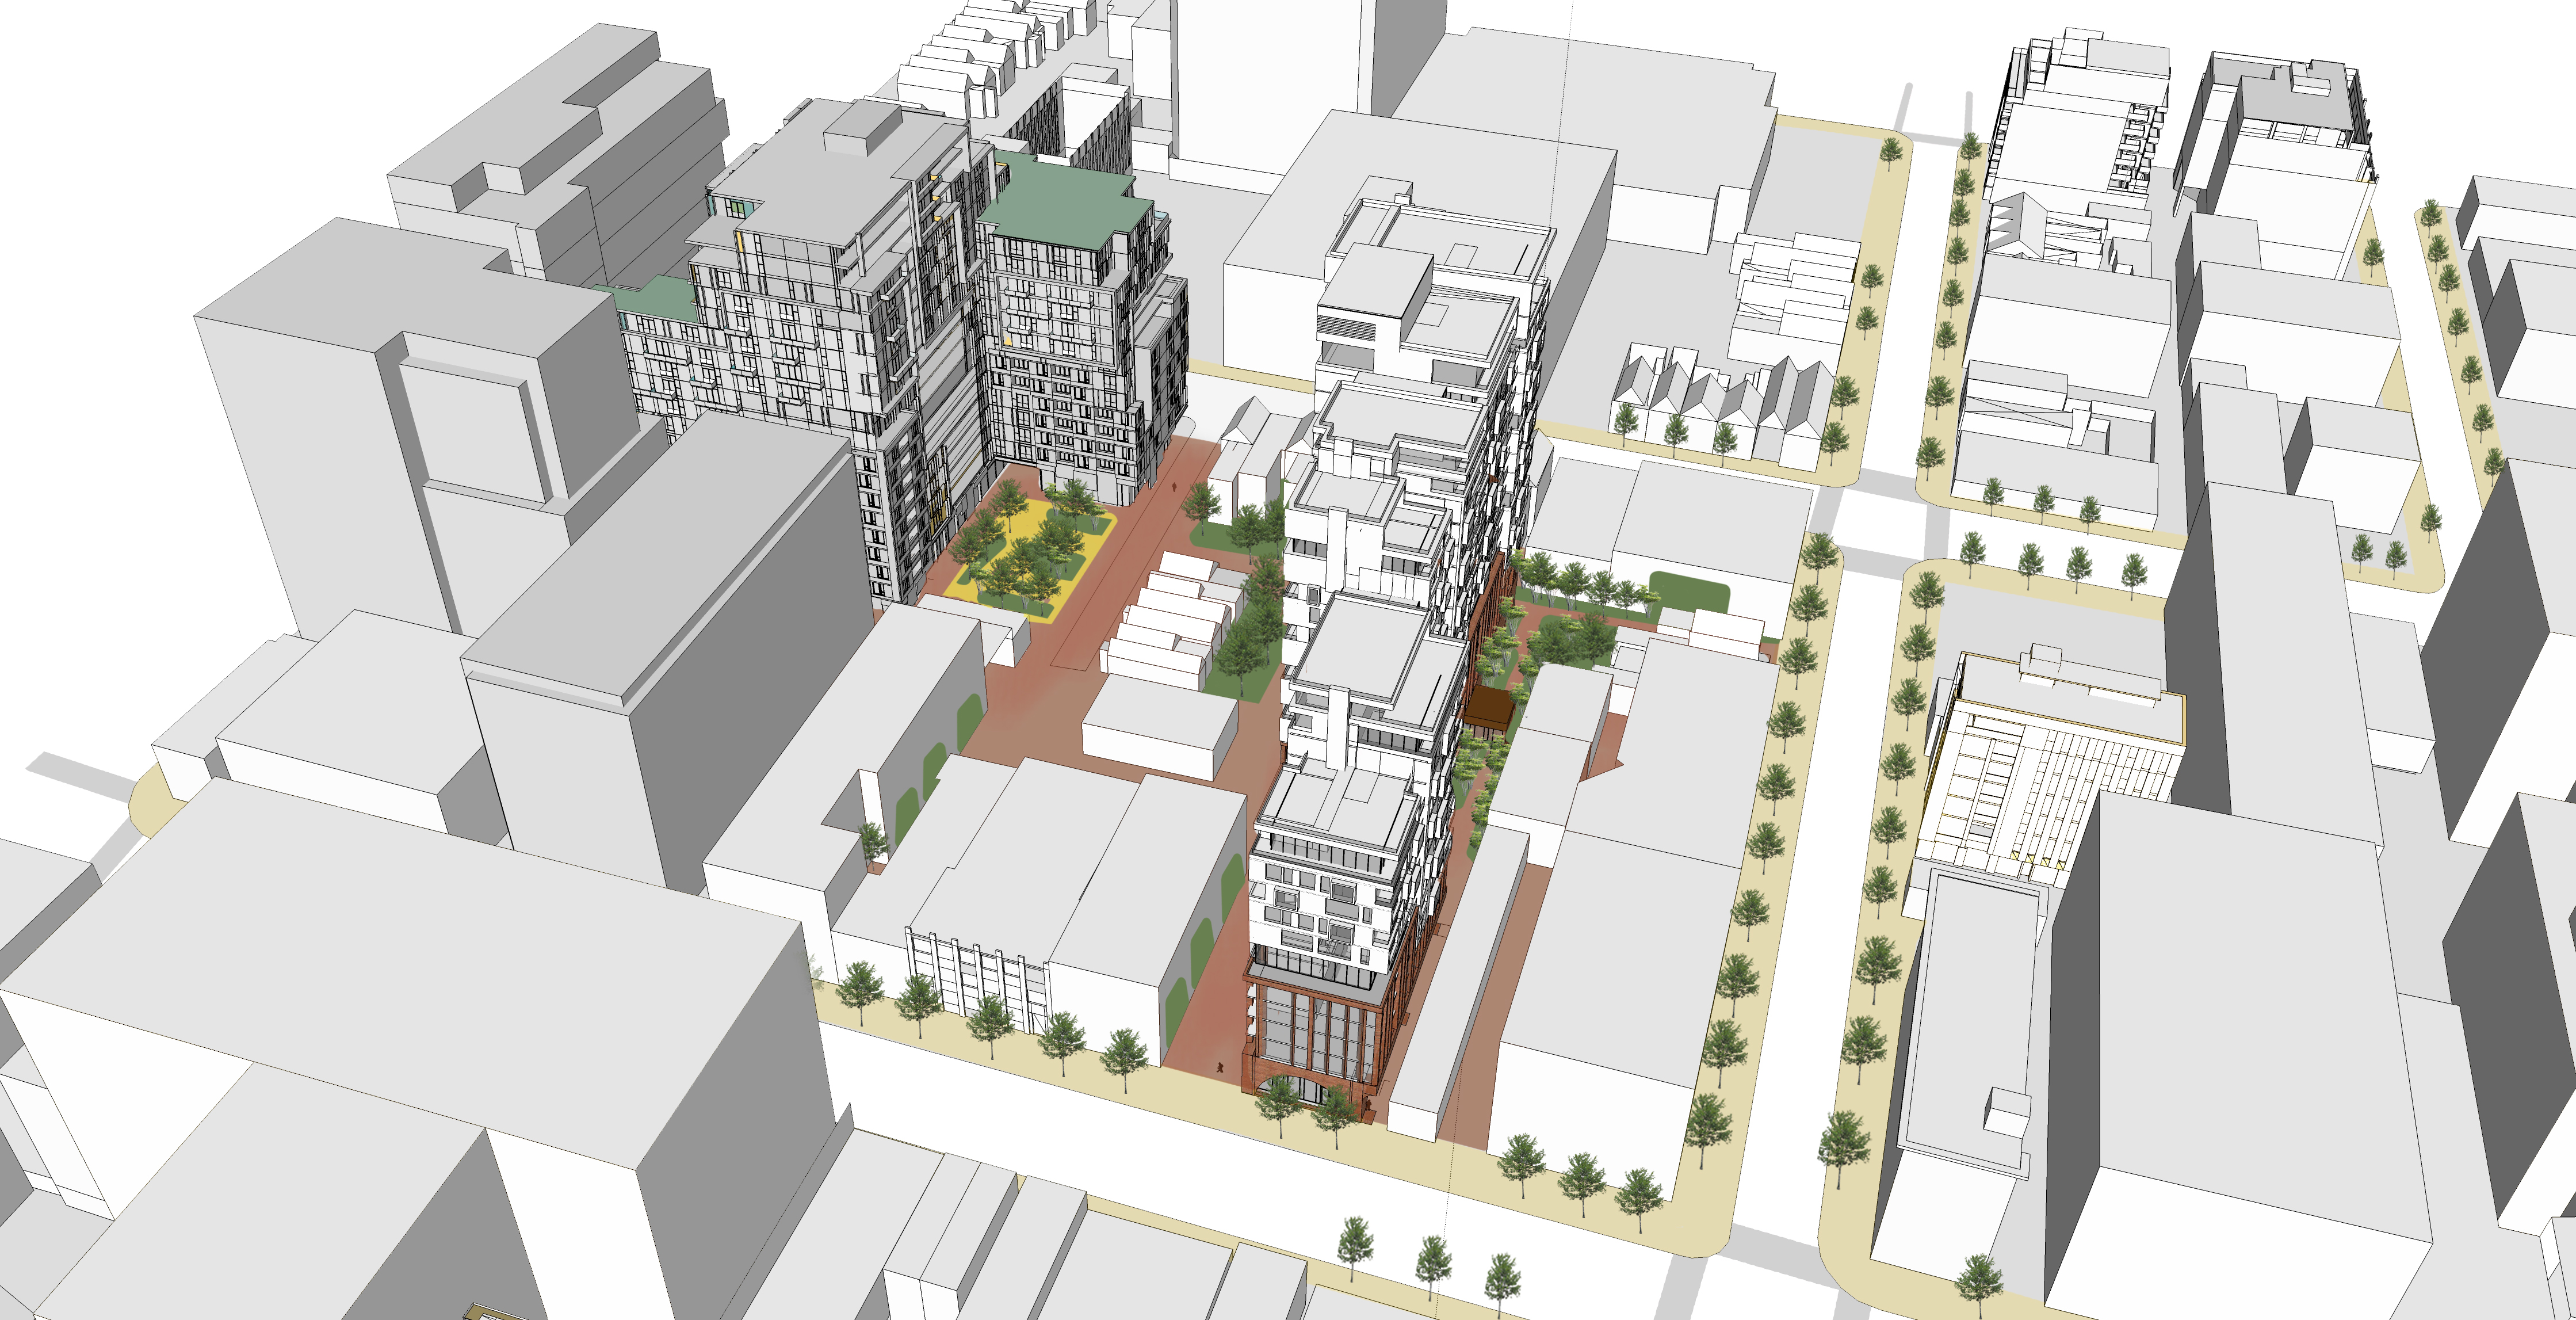 King adelaide bathurst portland coordinated block plan for Courtyard designs bathurst